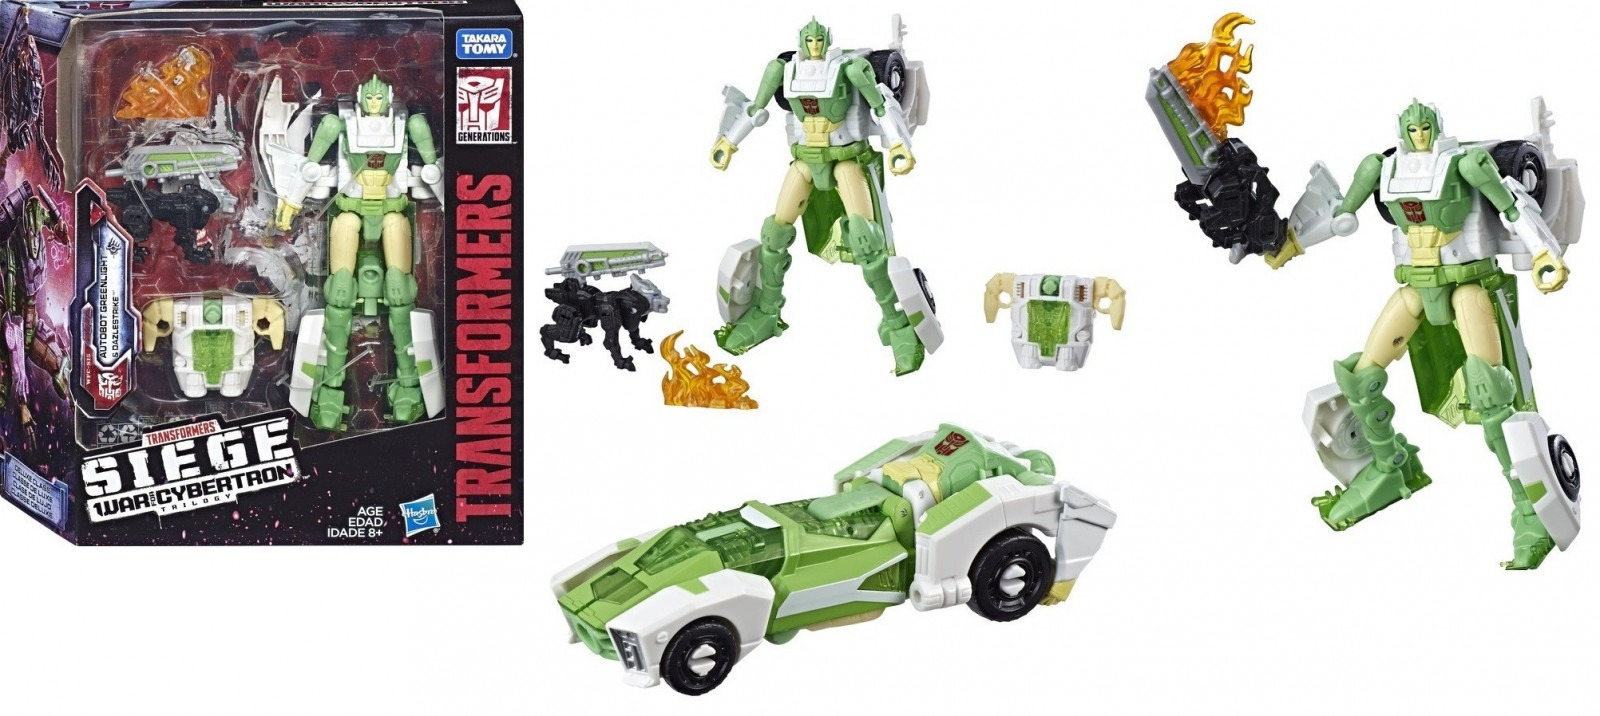 Transformers News: Transformers War for Cybertron: Siege Amazon Exclusive Greenlight Pre Order Method